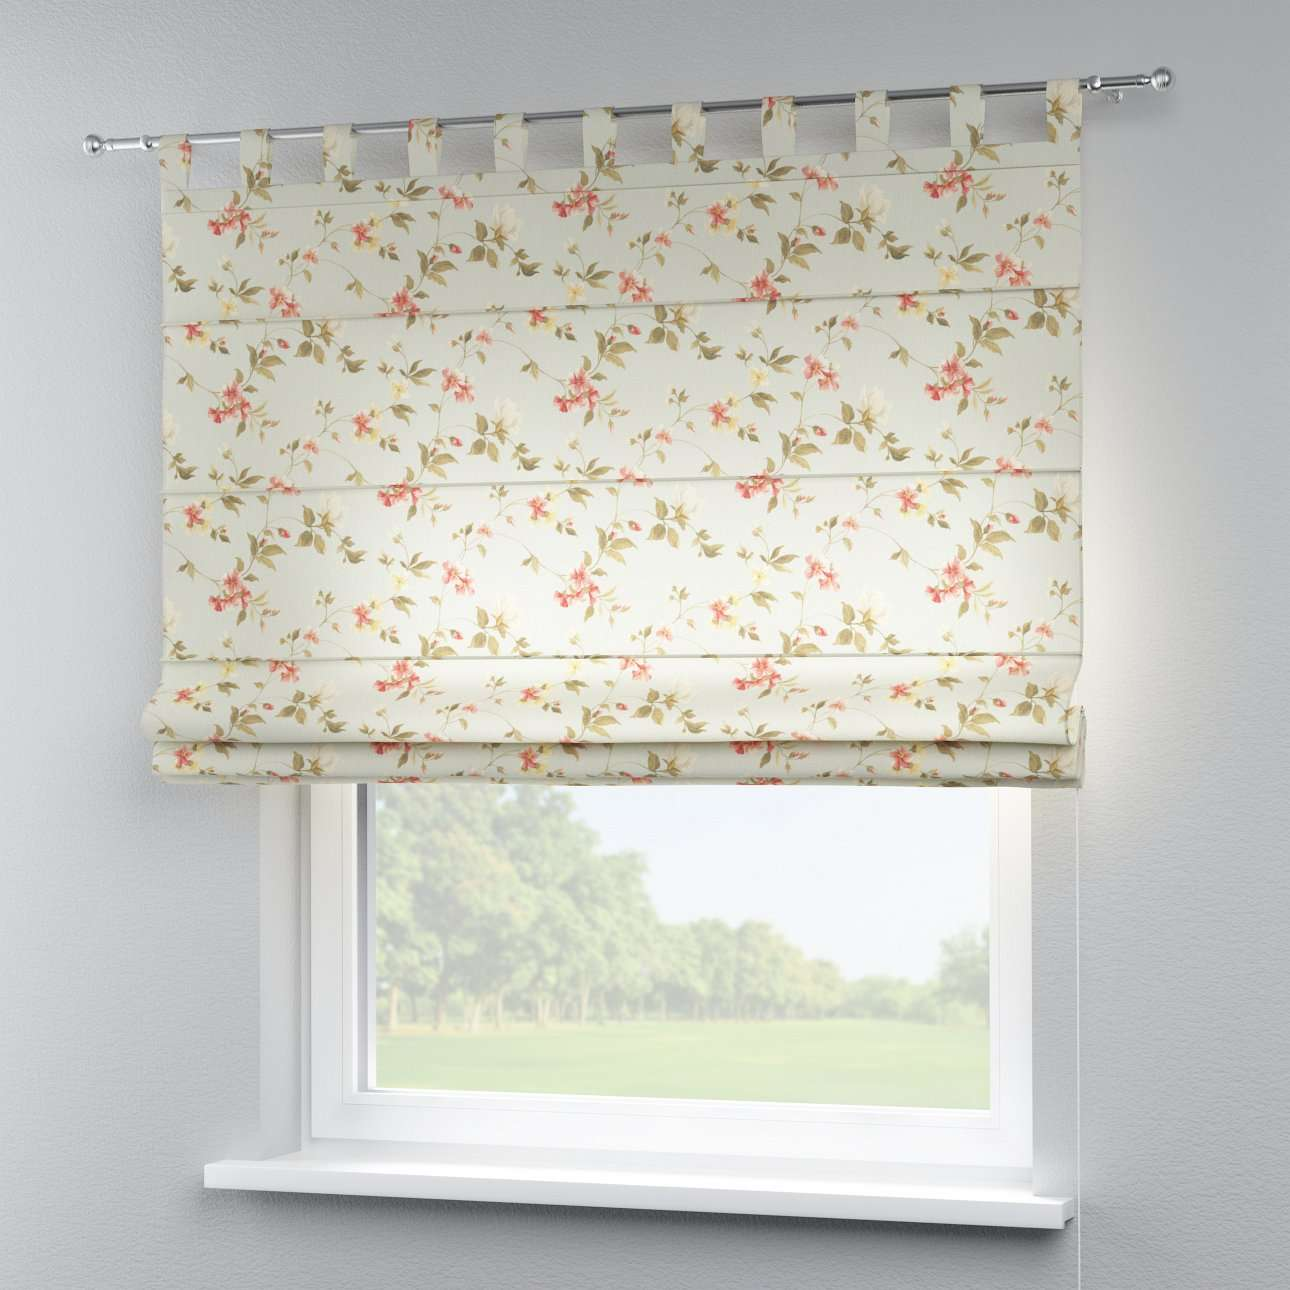 Verona tab top roman blind 80 x 170 cm (31.5 x 67 inch) in collection Londres, fabric: 124-65